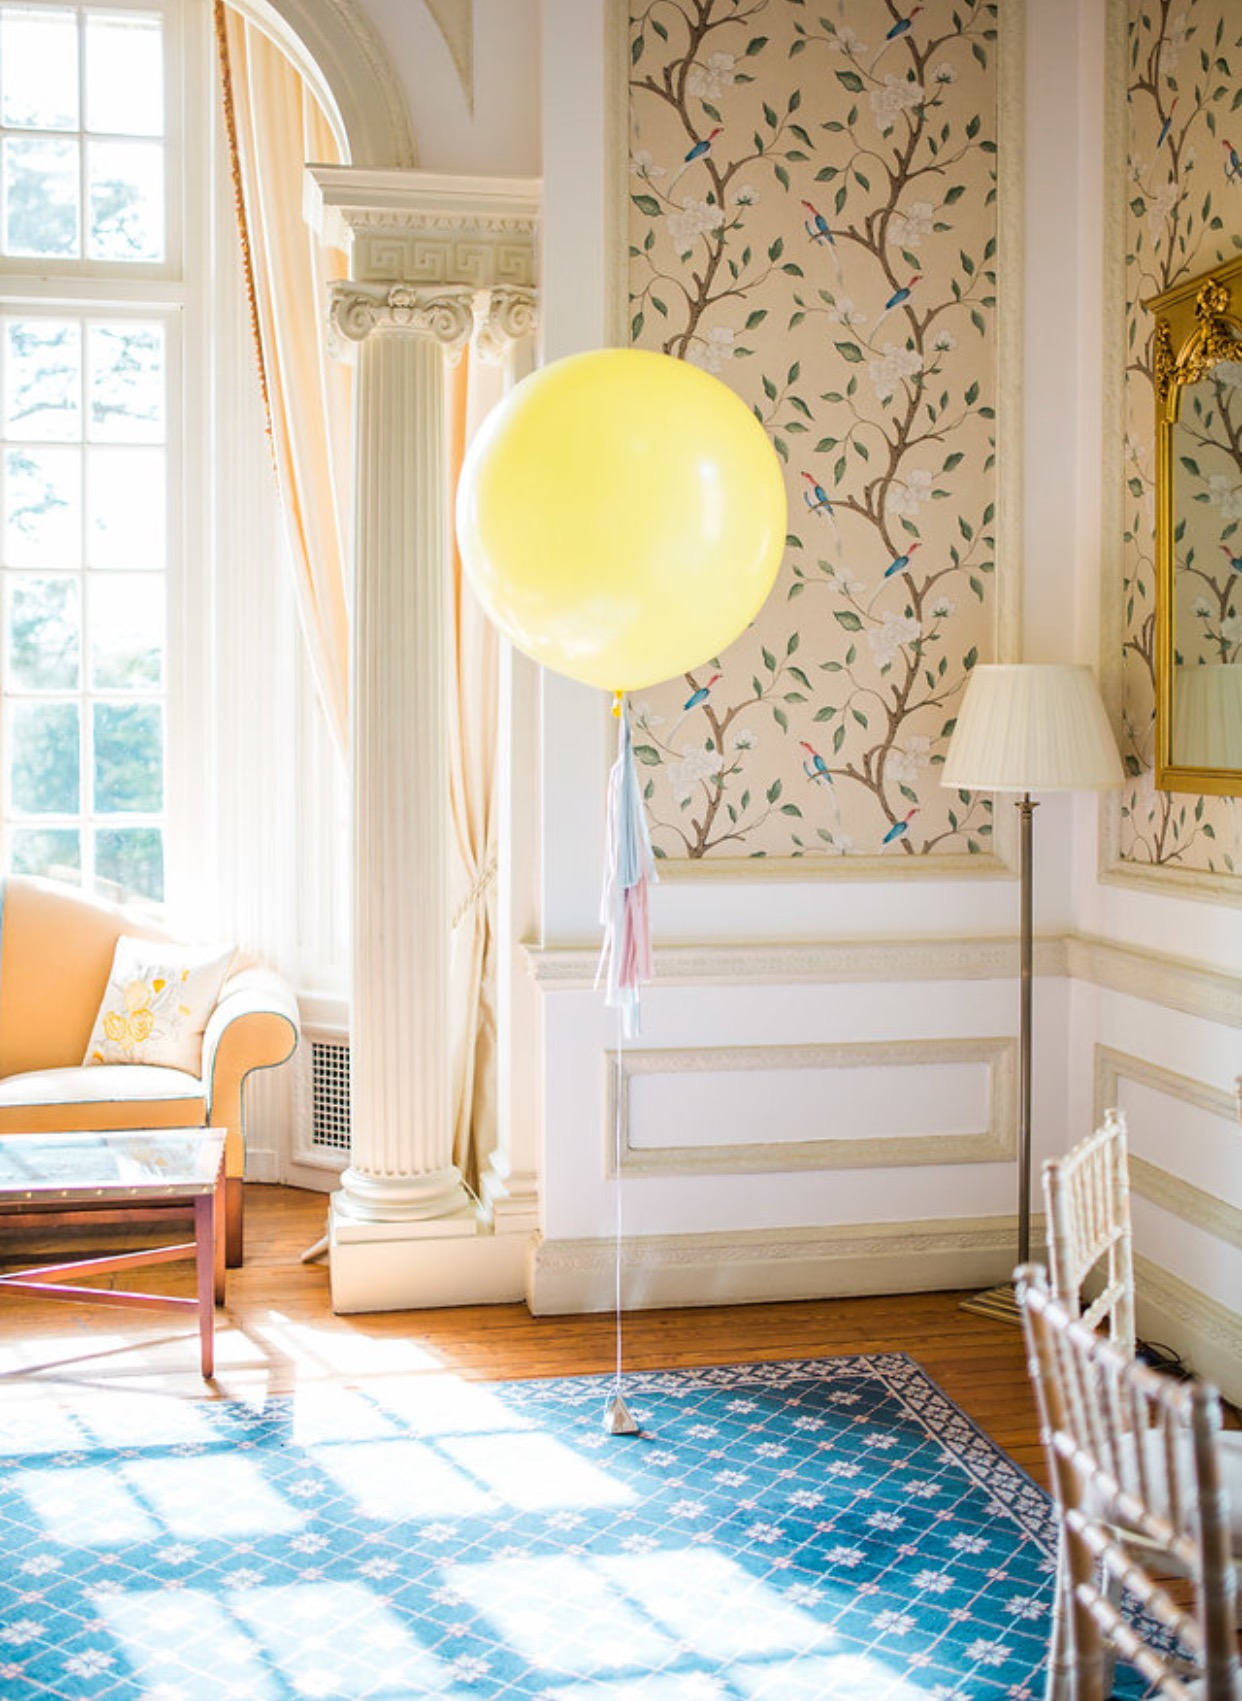 Bubblegum Balloons at Hedsor House